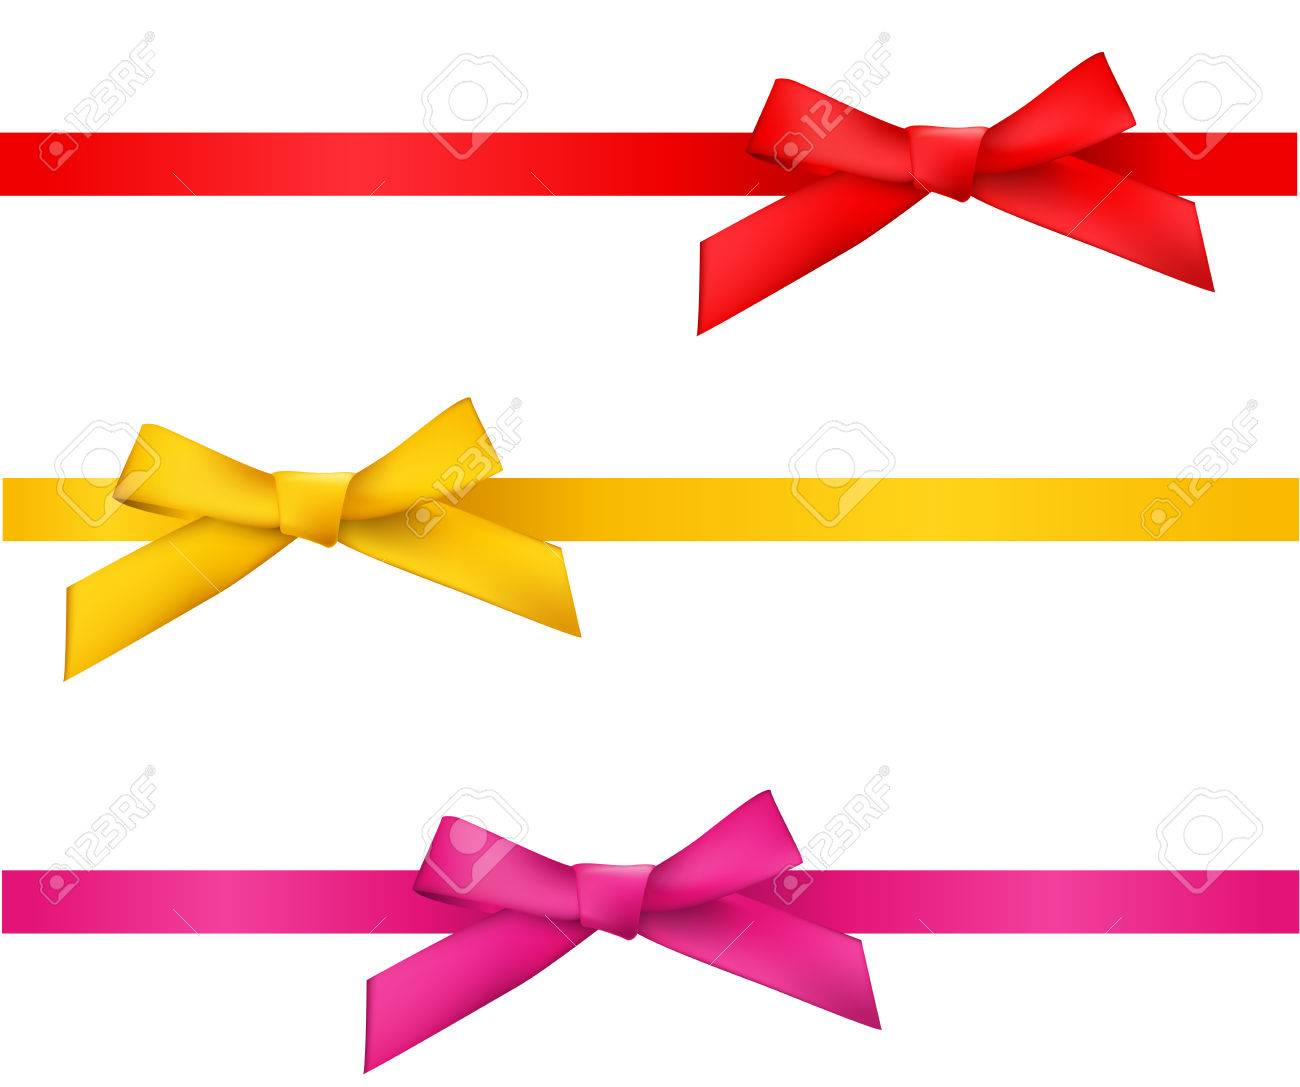 ribbon bows - red,gold,pink collection. isolated on white. - 55279057